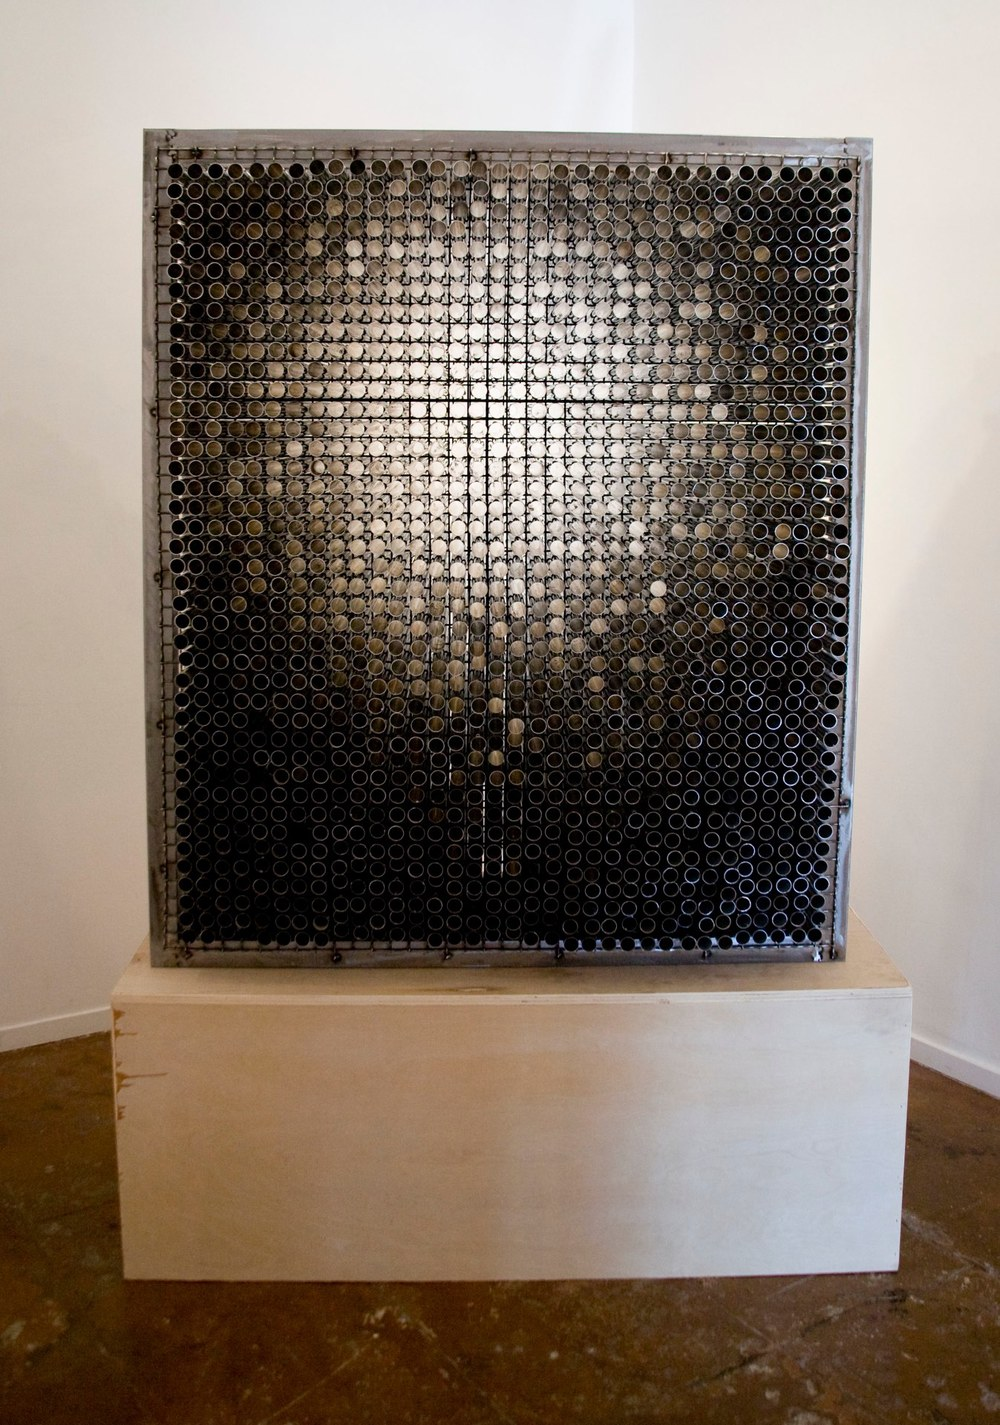 Randy Colosky Ghost in the Machine, 2013 stainless steel 47 x 26 x 56 inches